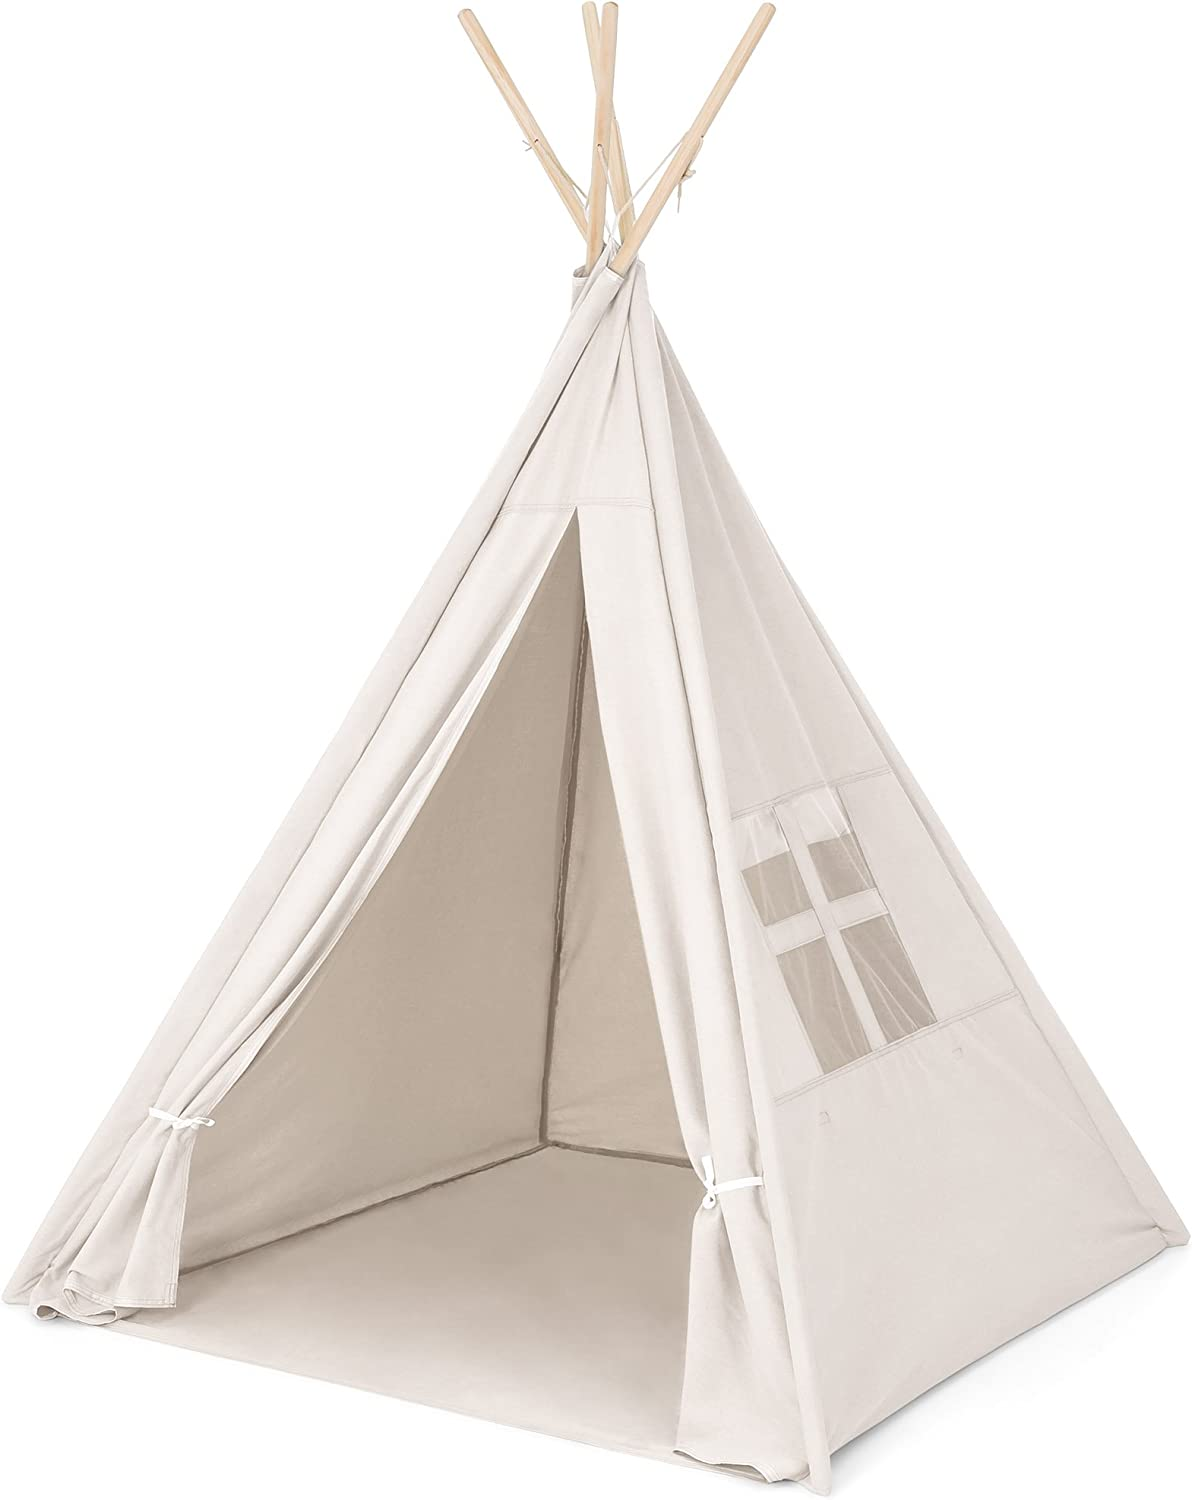 Amazon Com Best Choice Products 6ft Kids Cotton Canvas Play Tent Playhouse W Carrying Bag White Toys Games